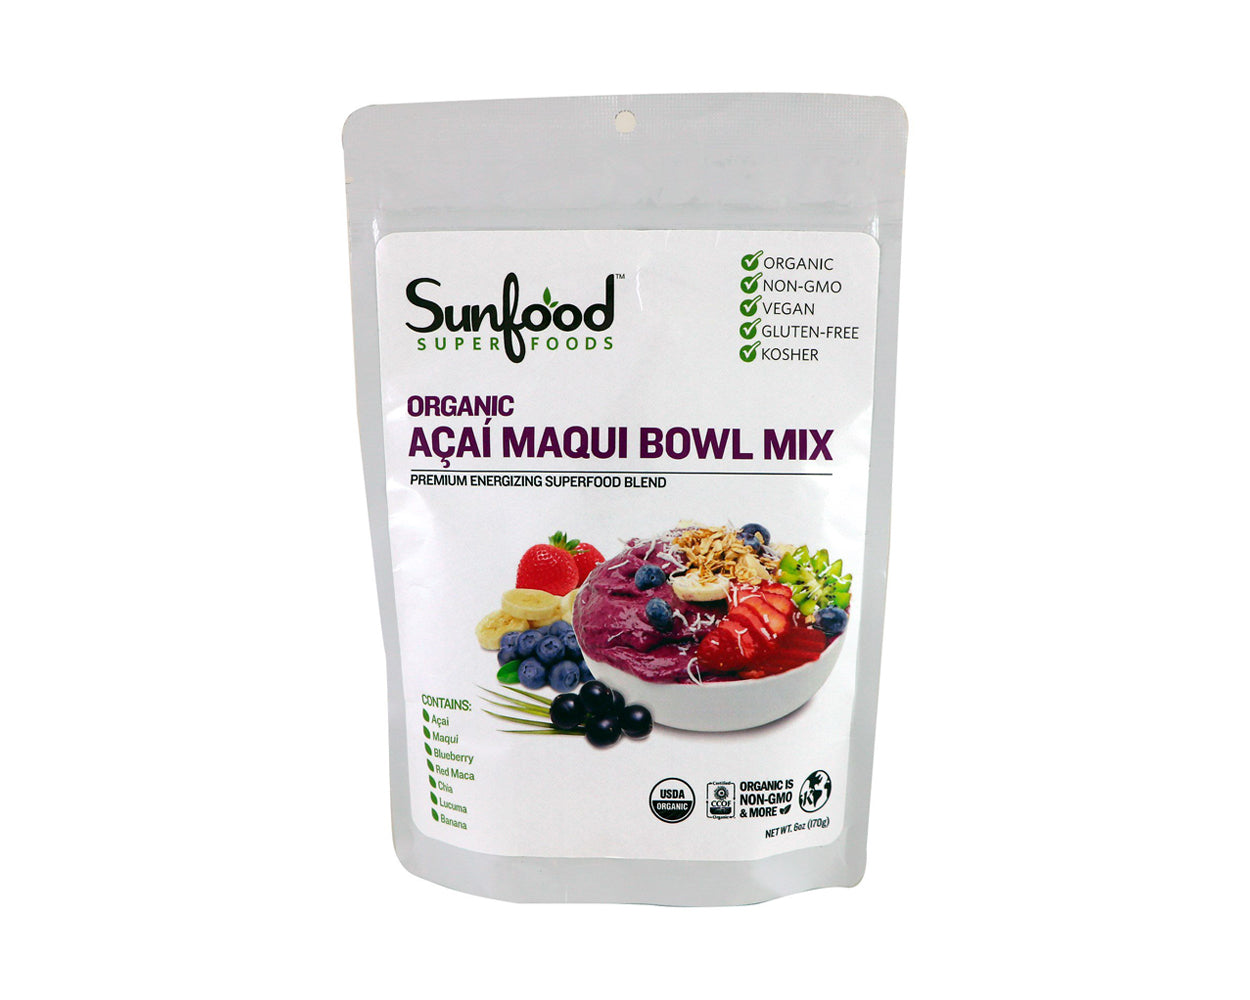 Acai Maqui Bowl Mix, 6oz, Organic